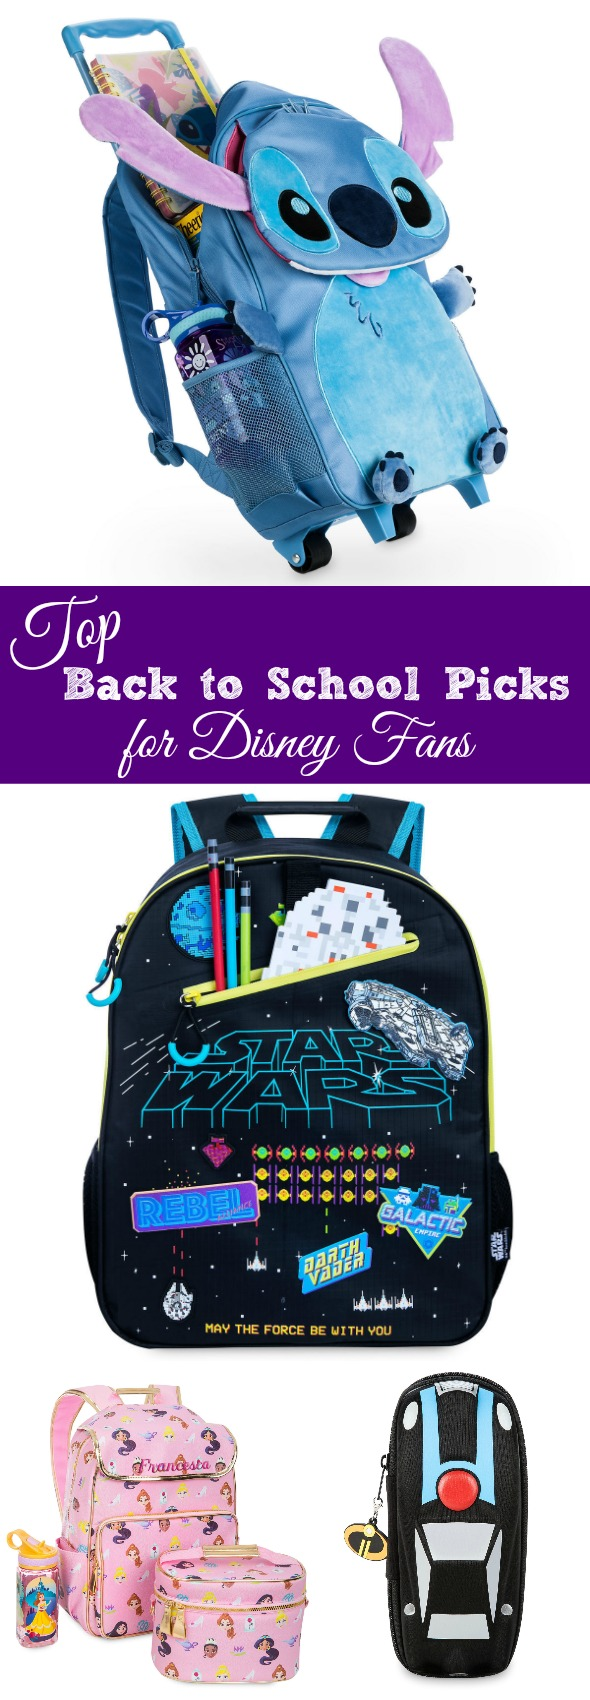 Top Back to School Picks for Disney Fans #affiliate #ad #disney #backtoschool #schoolshopping #shopdisney #backpack #lunchbox #lunchtote #pencilcase #starwars #superhero #incredibles #stitch #ariel #princess #disneyprincess